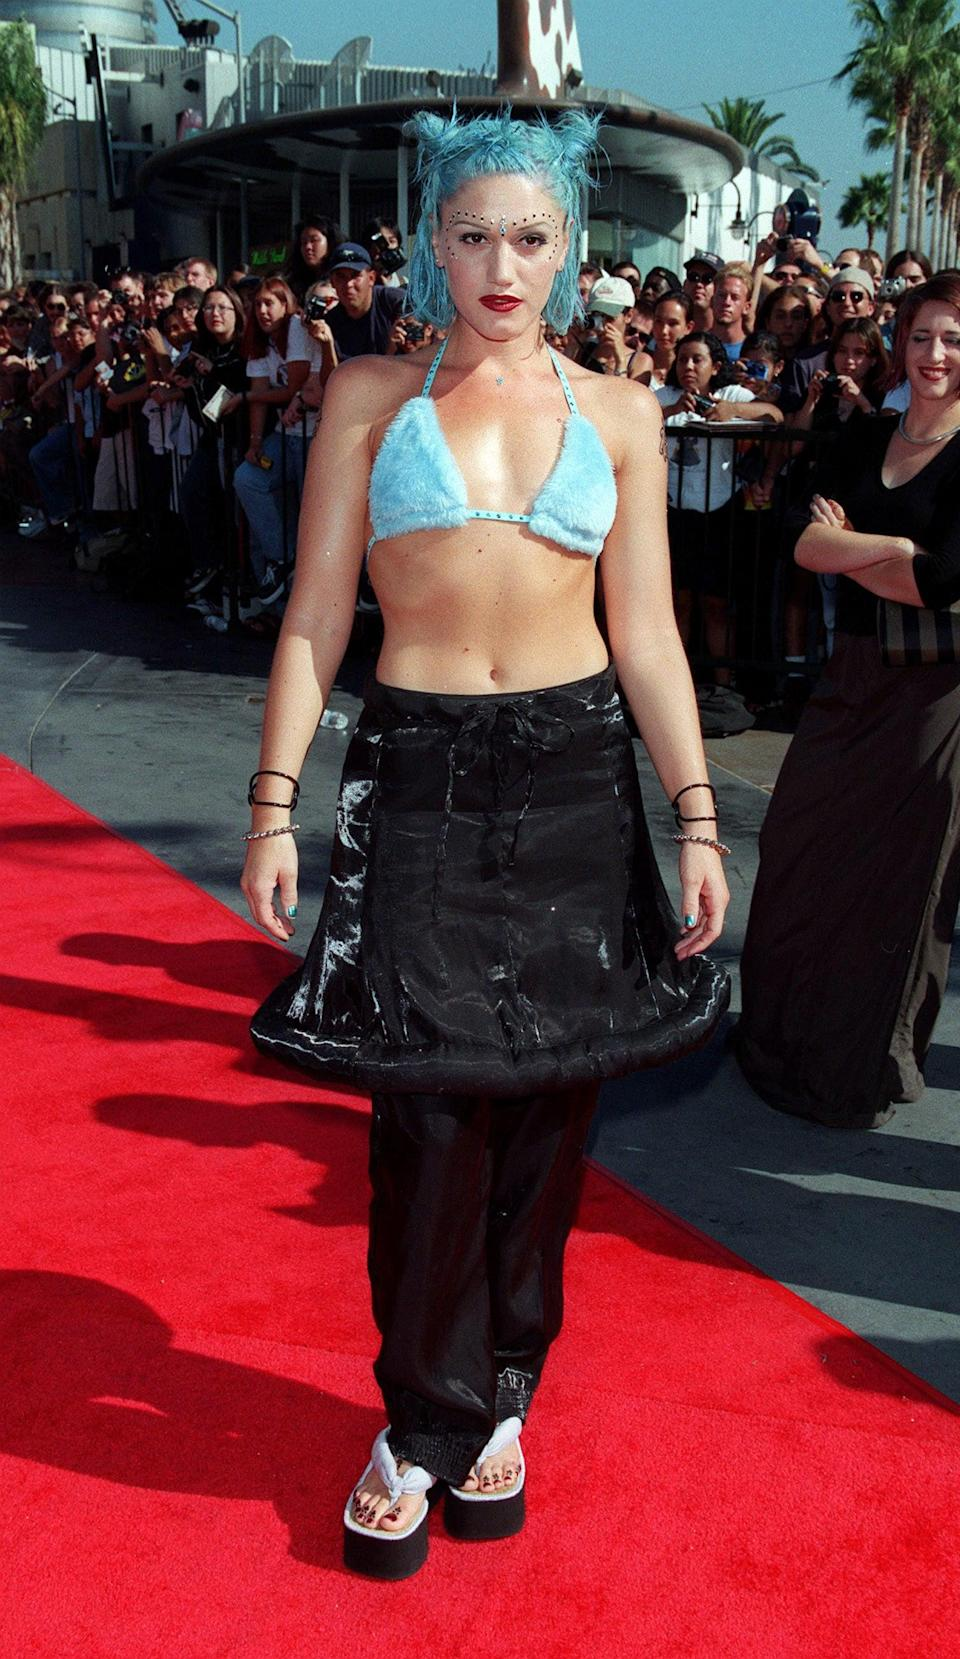 <p>Sorry, we couldn't help ourselves. Gwen's appearance at the MTV Video Music Awards in 1998 alongside No Doubt is still one of her most iconic fashion moments.</p>